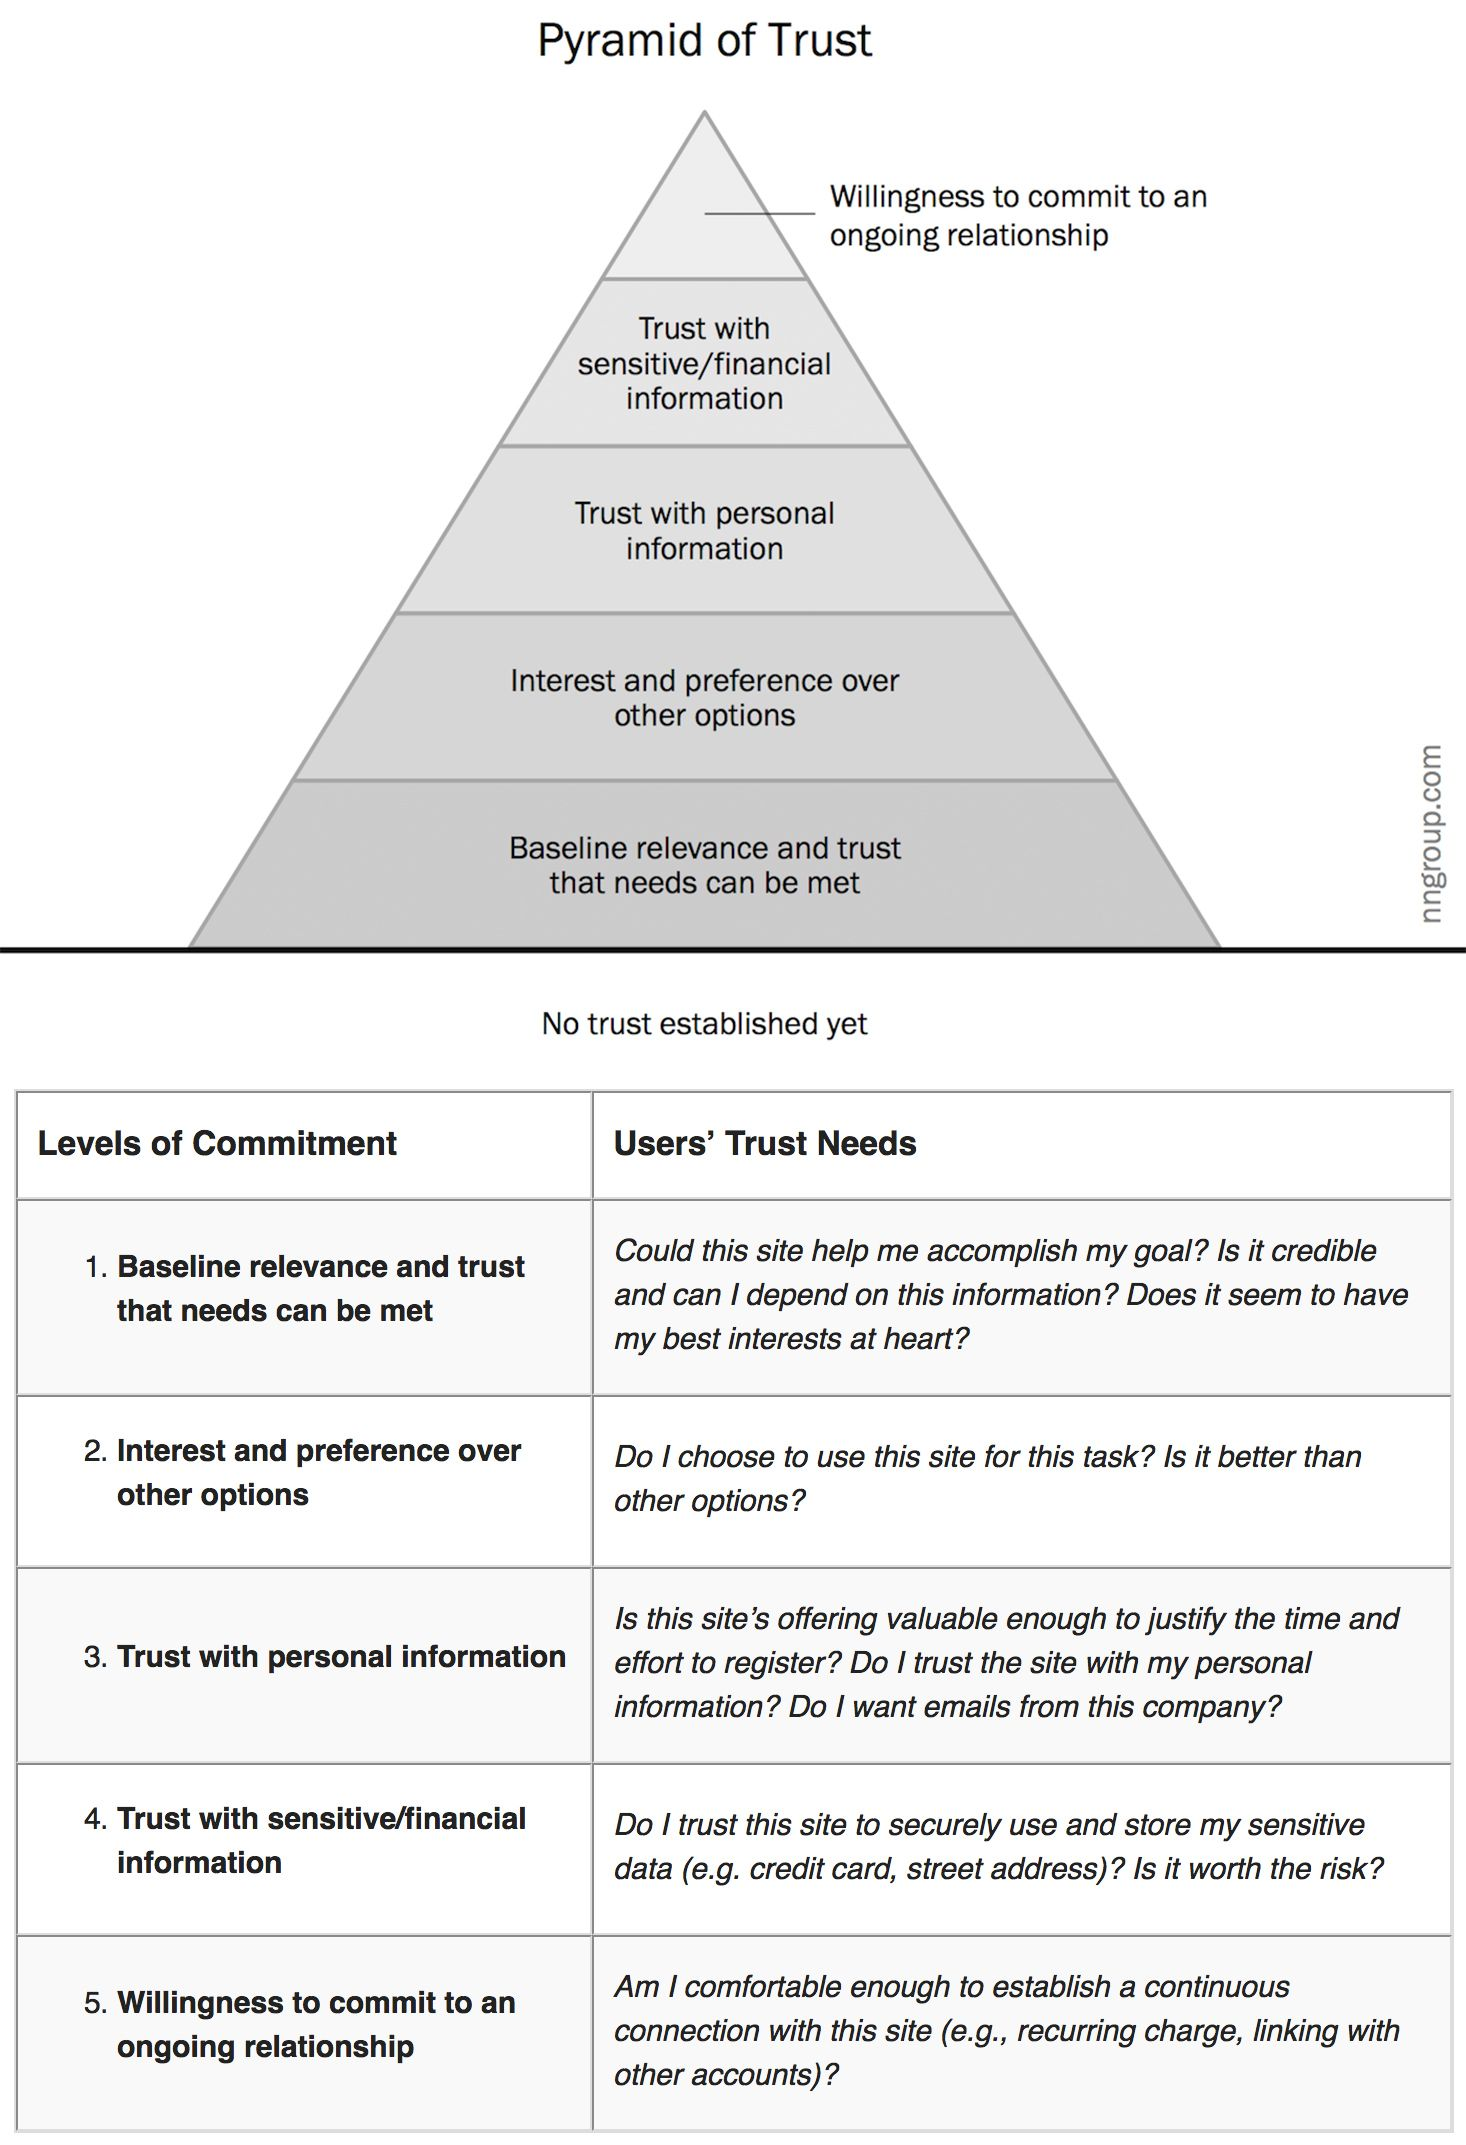 Five experiential levels of commitment shown on the